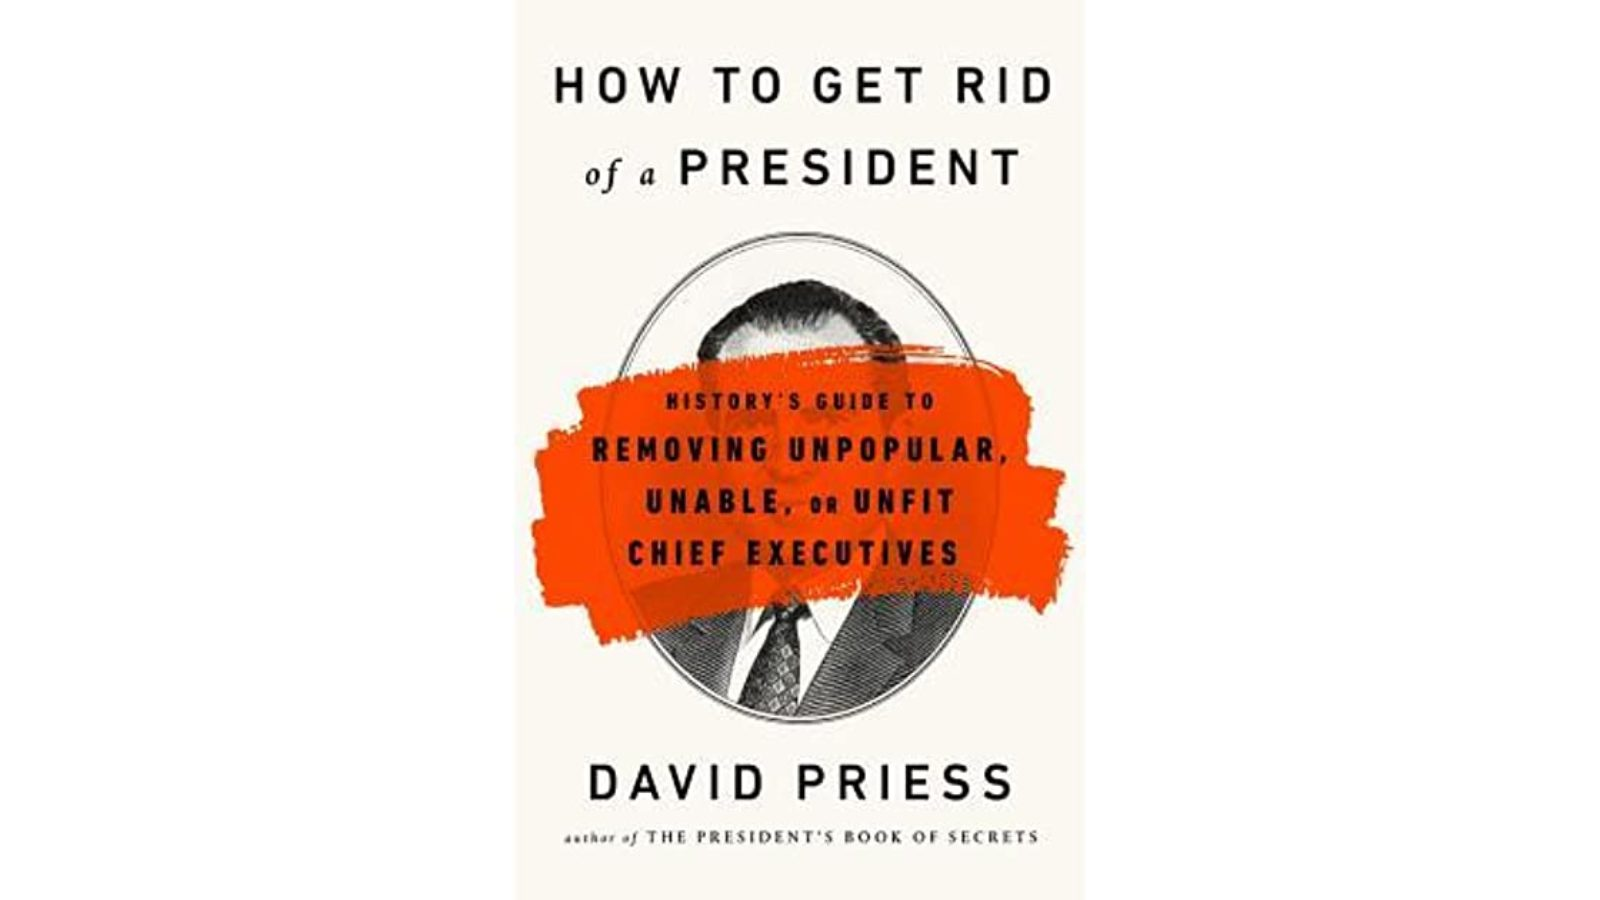 How to Get Rid of a President: History's Guide to Removing Unpopular, Unable, or Unfit Chief Executives - bookcover